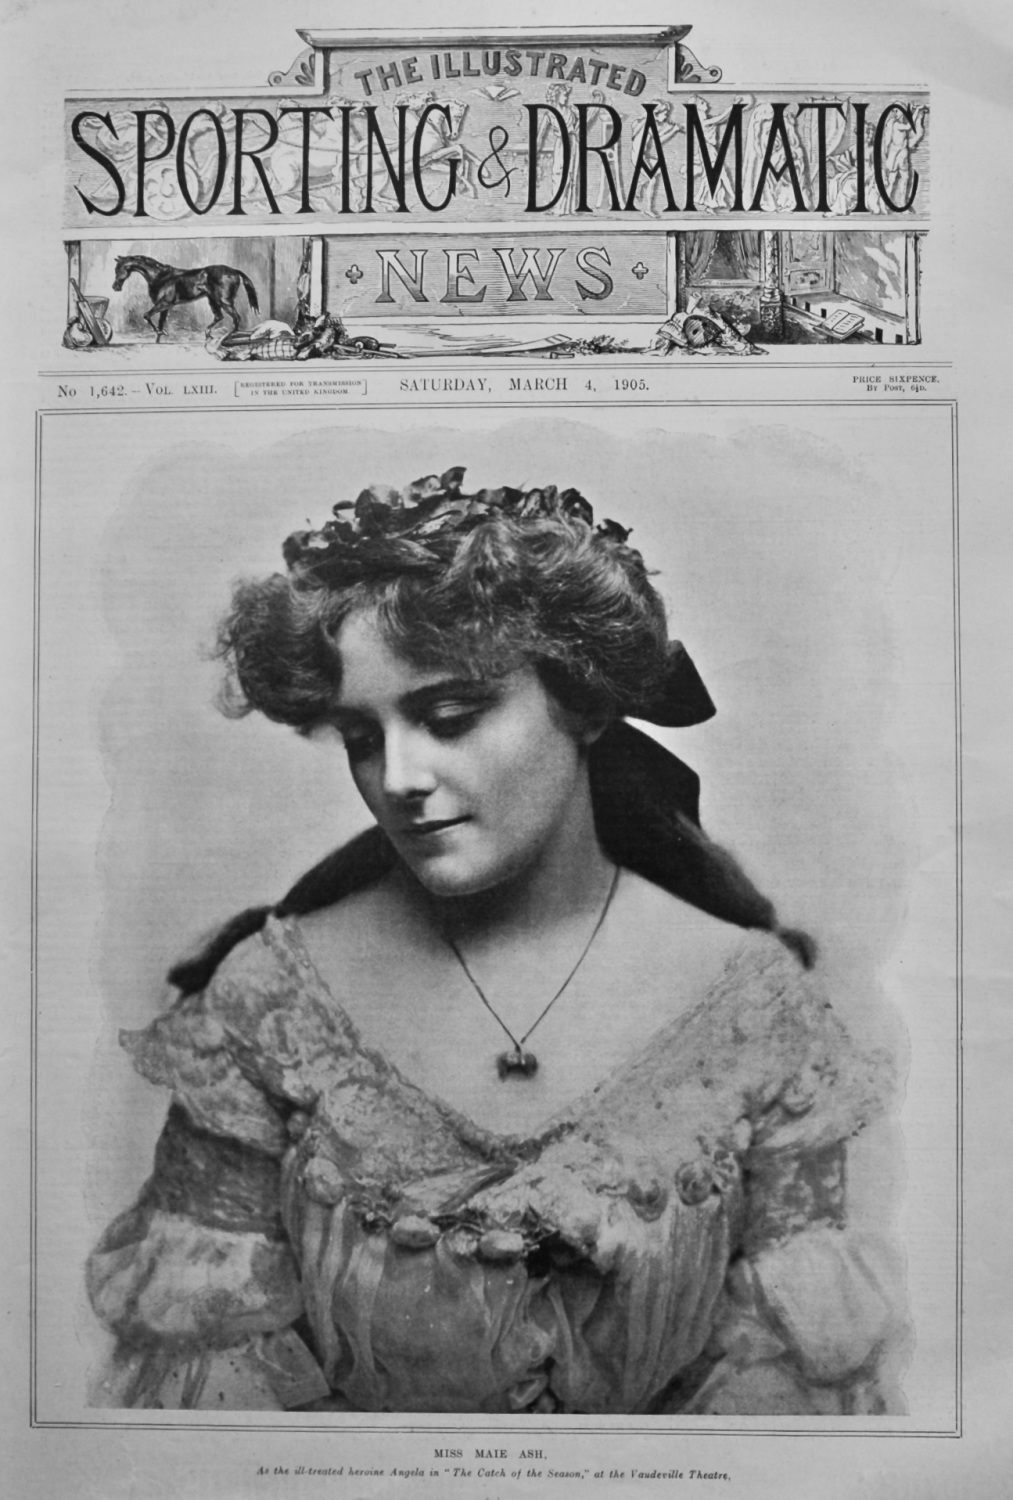 Miss Maie Ash, as the ill-treated heroine Angela in